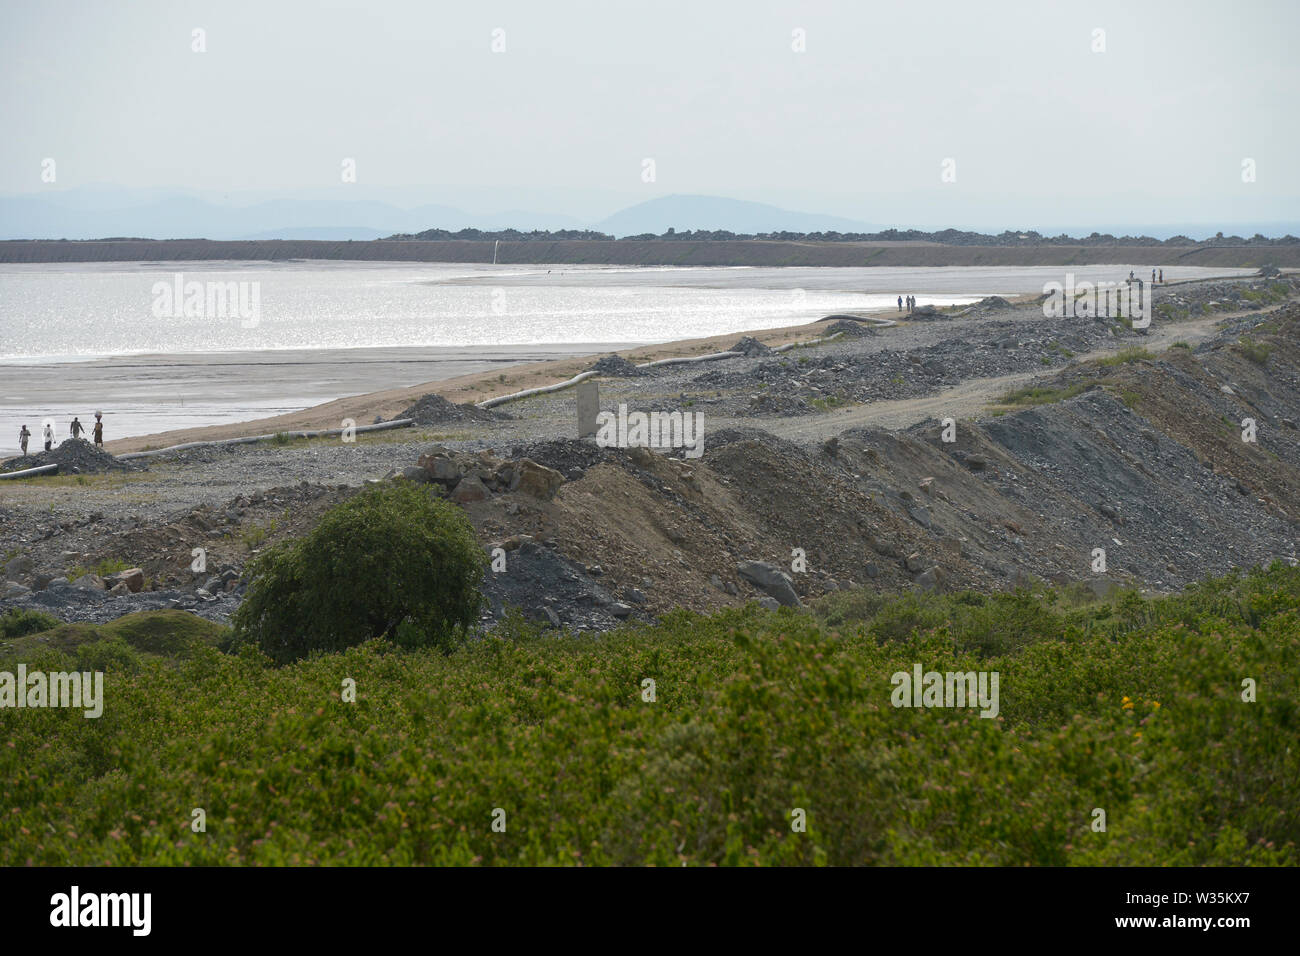 Gold Ore Stock Photos & Gold Ore Stock Images - Alamy